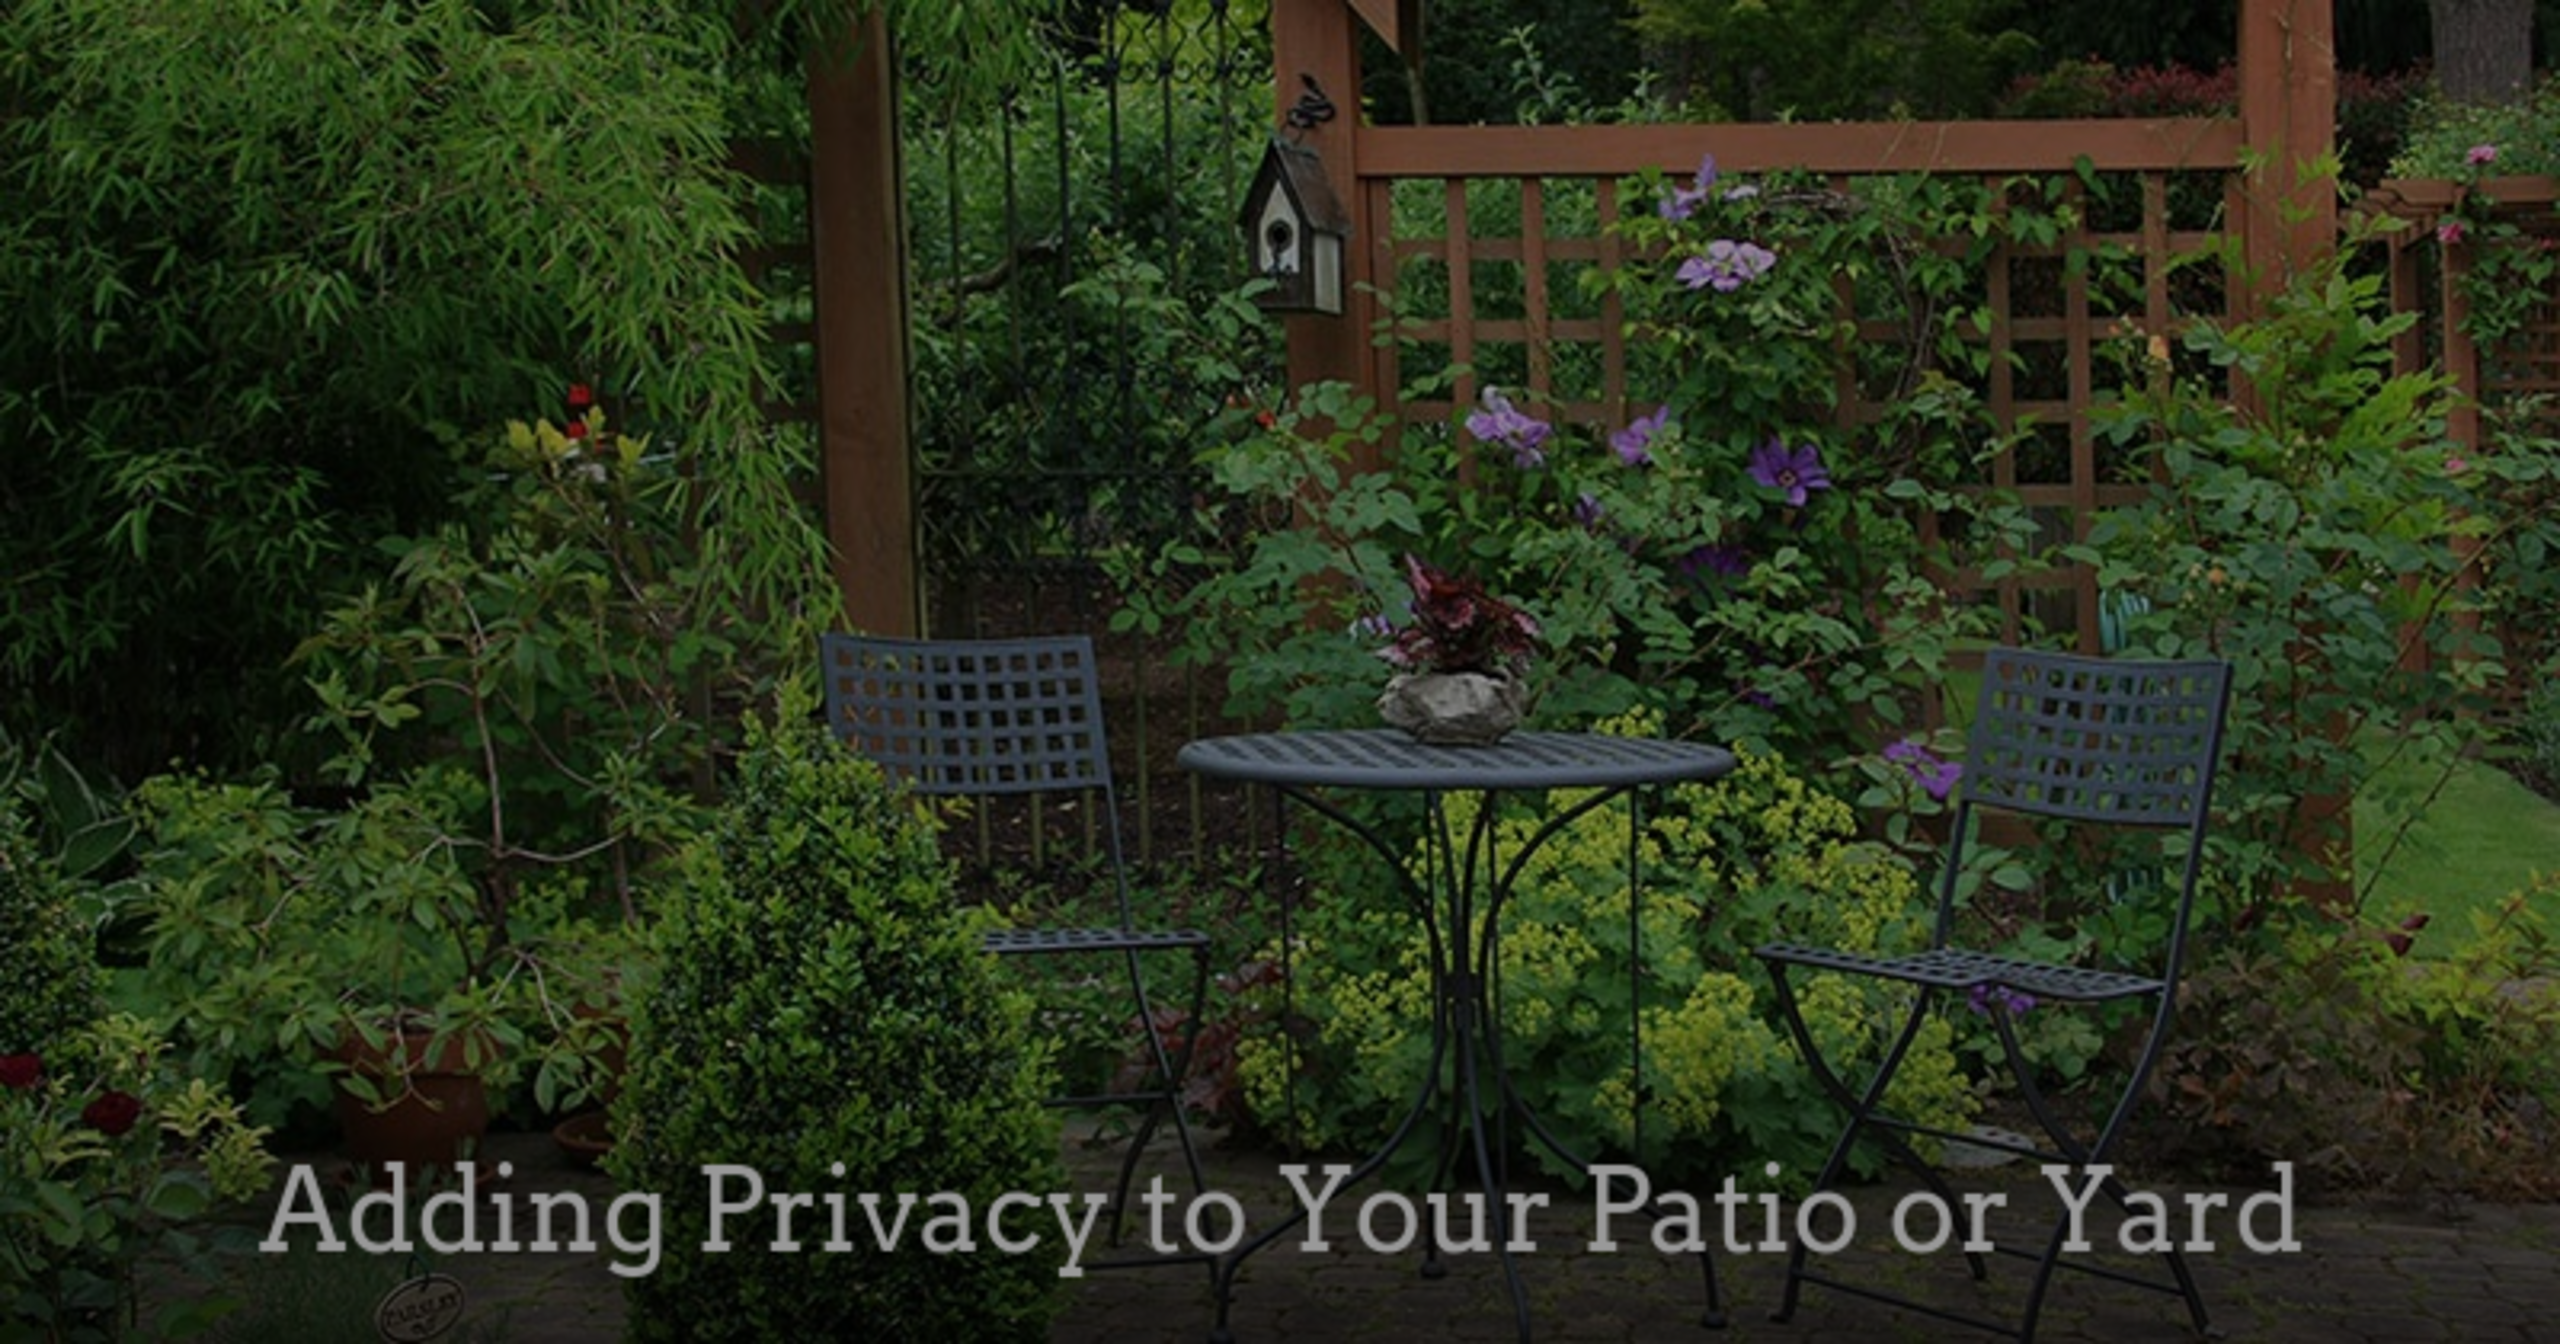 Adding Privacy to your Patio or Yard